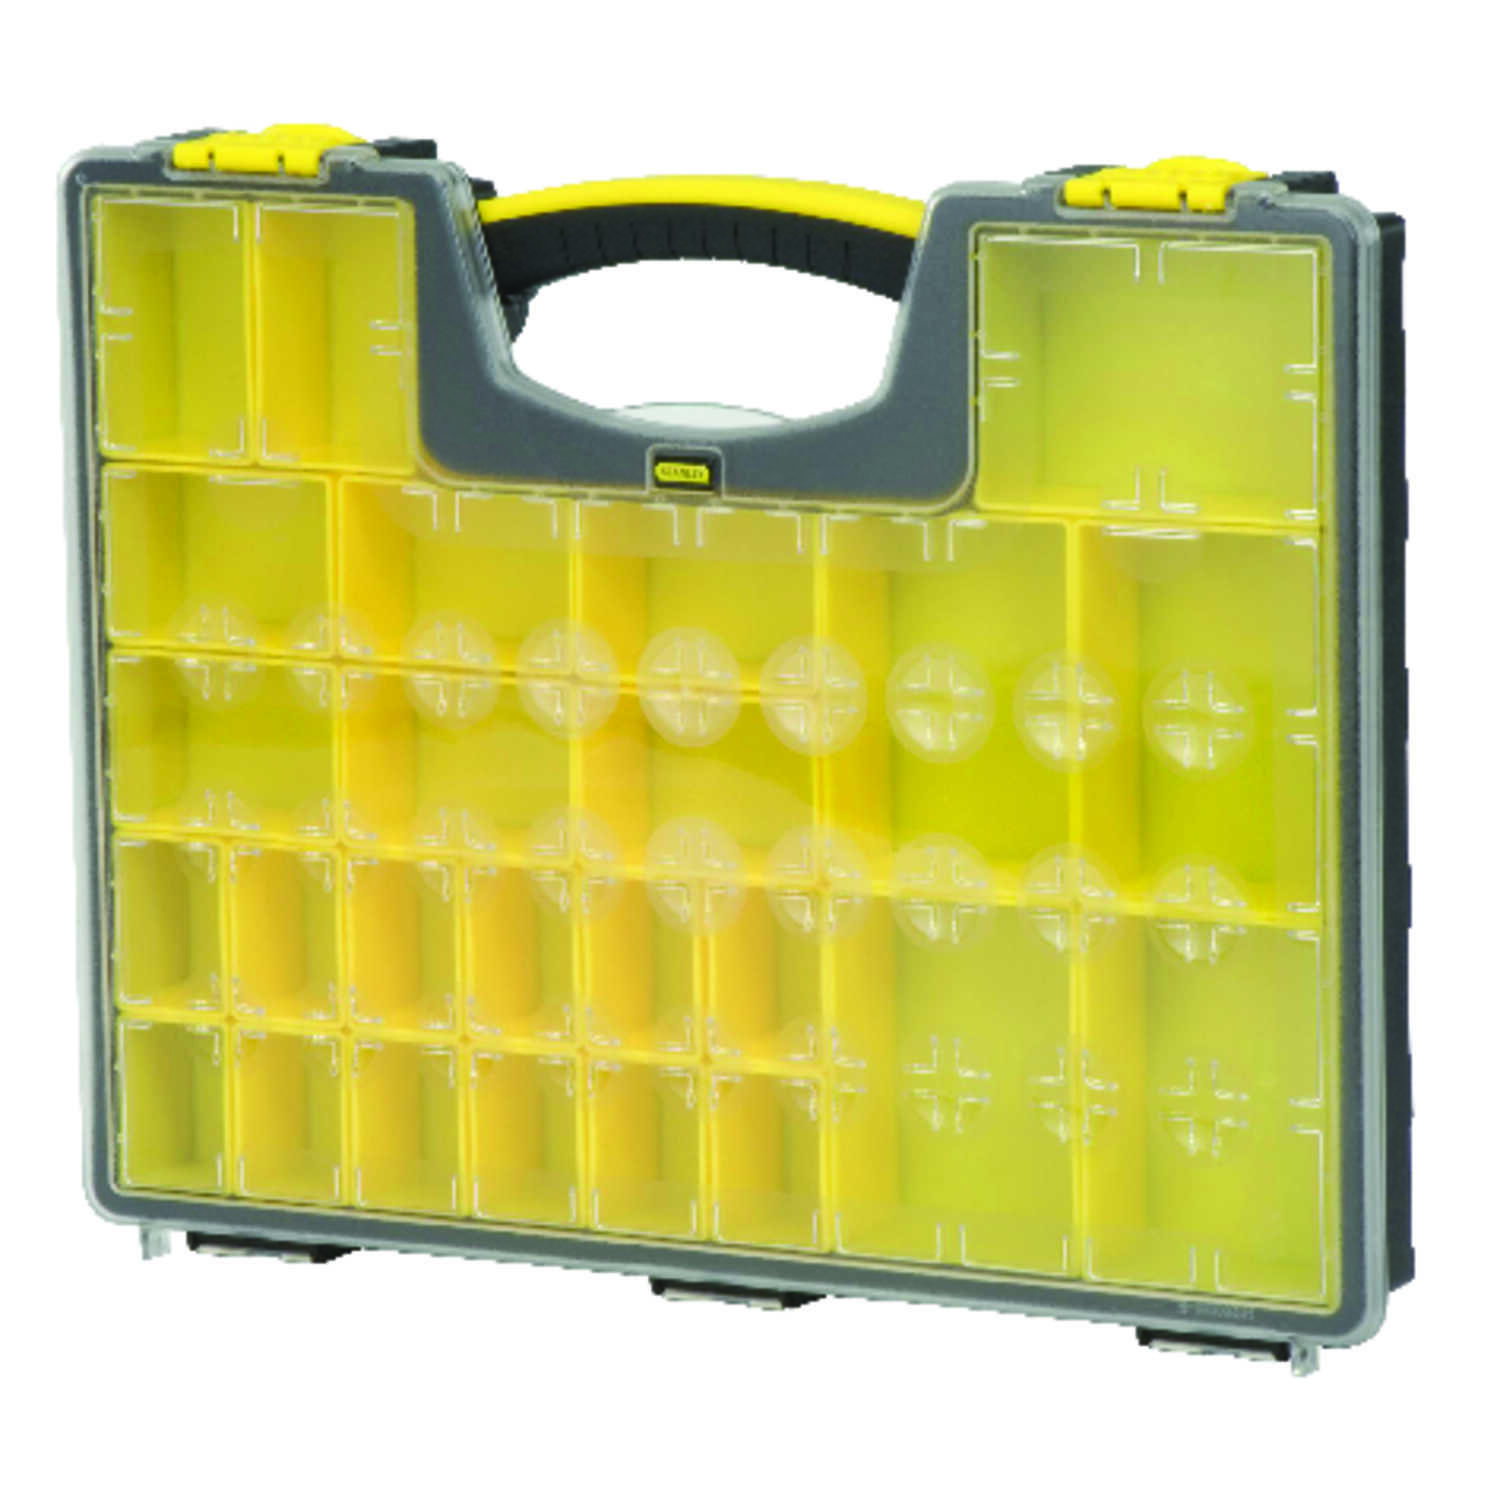 Stanley  16.7 in. L x 13.3 in. W x 2.15 in. H Storage Organizer  Polypropylene  24 compartment Clear